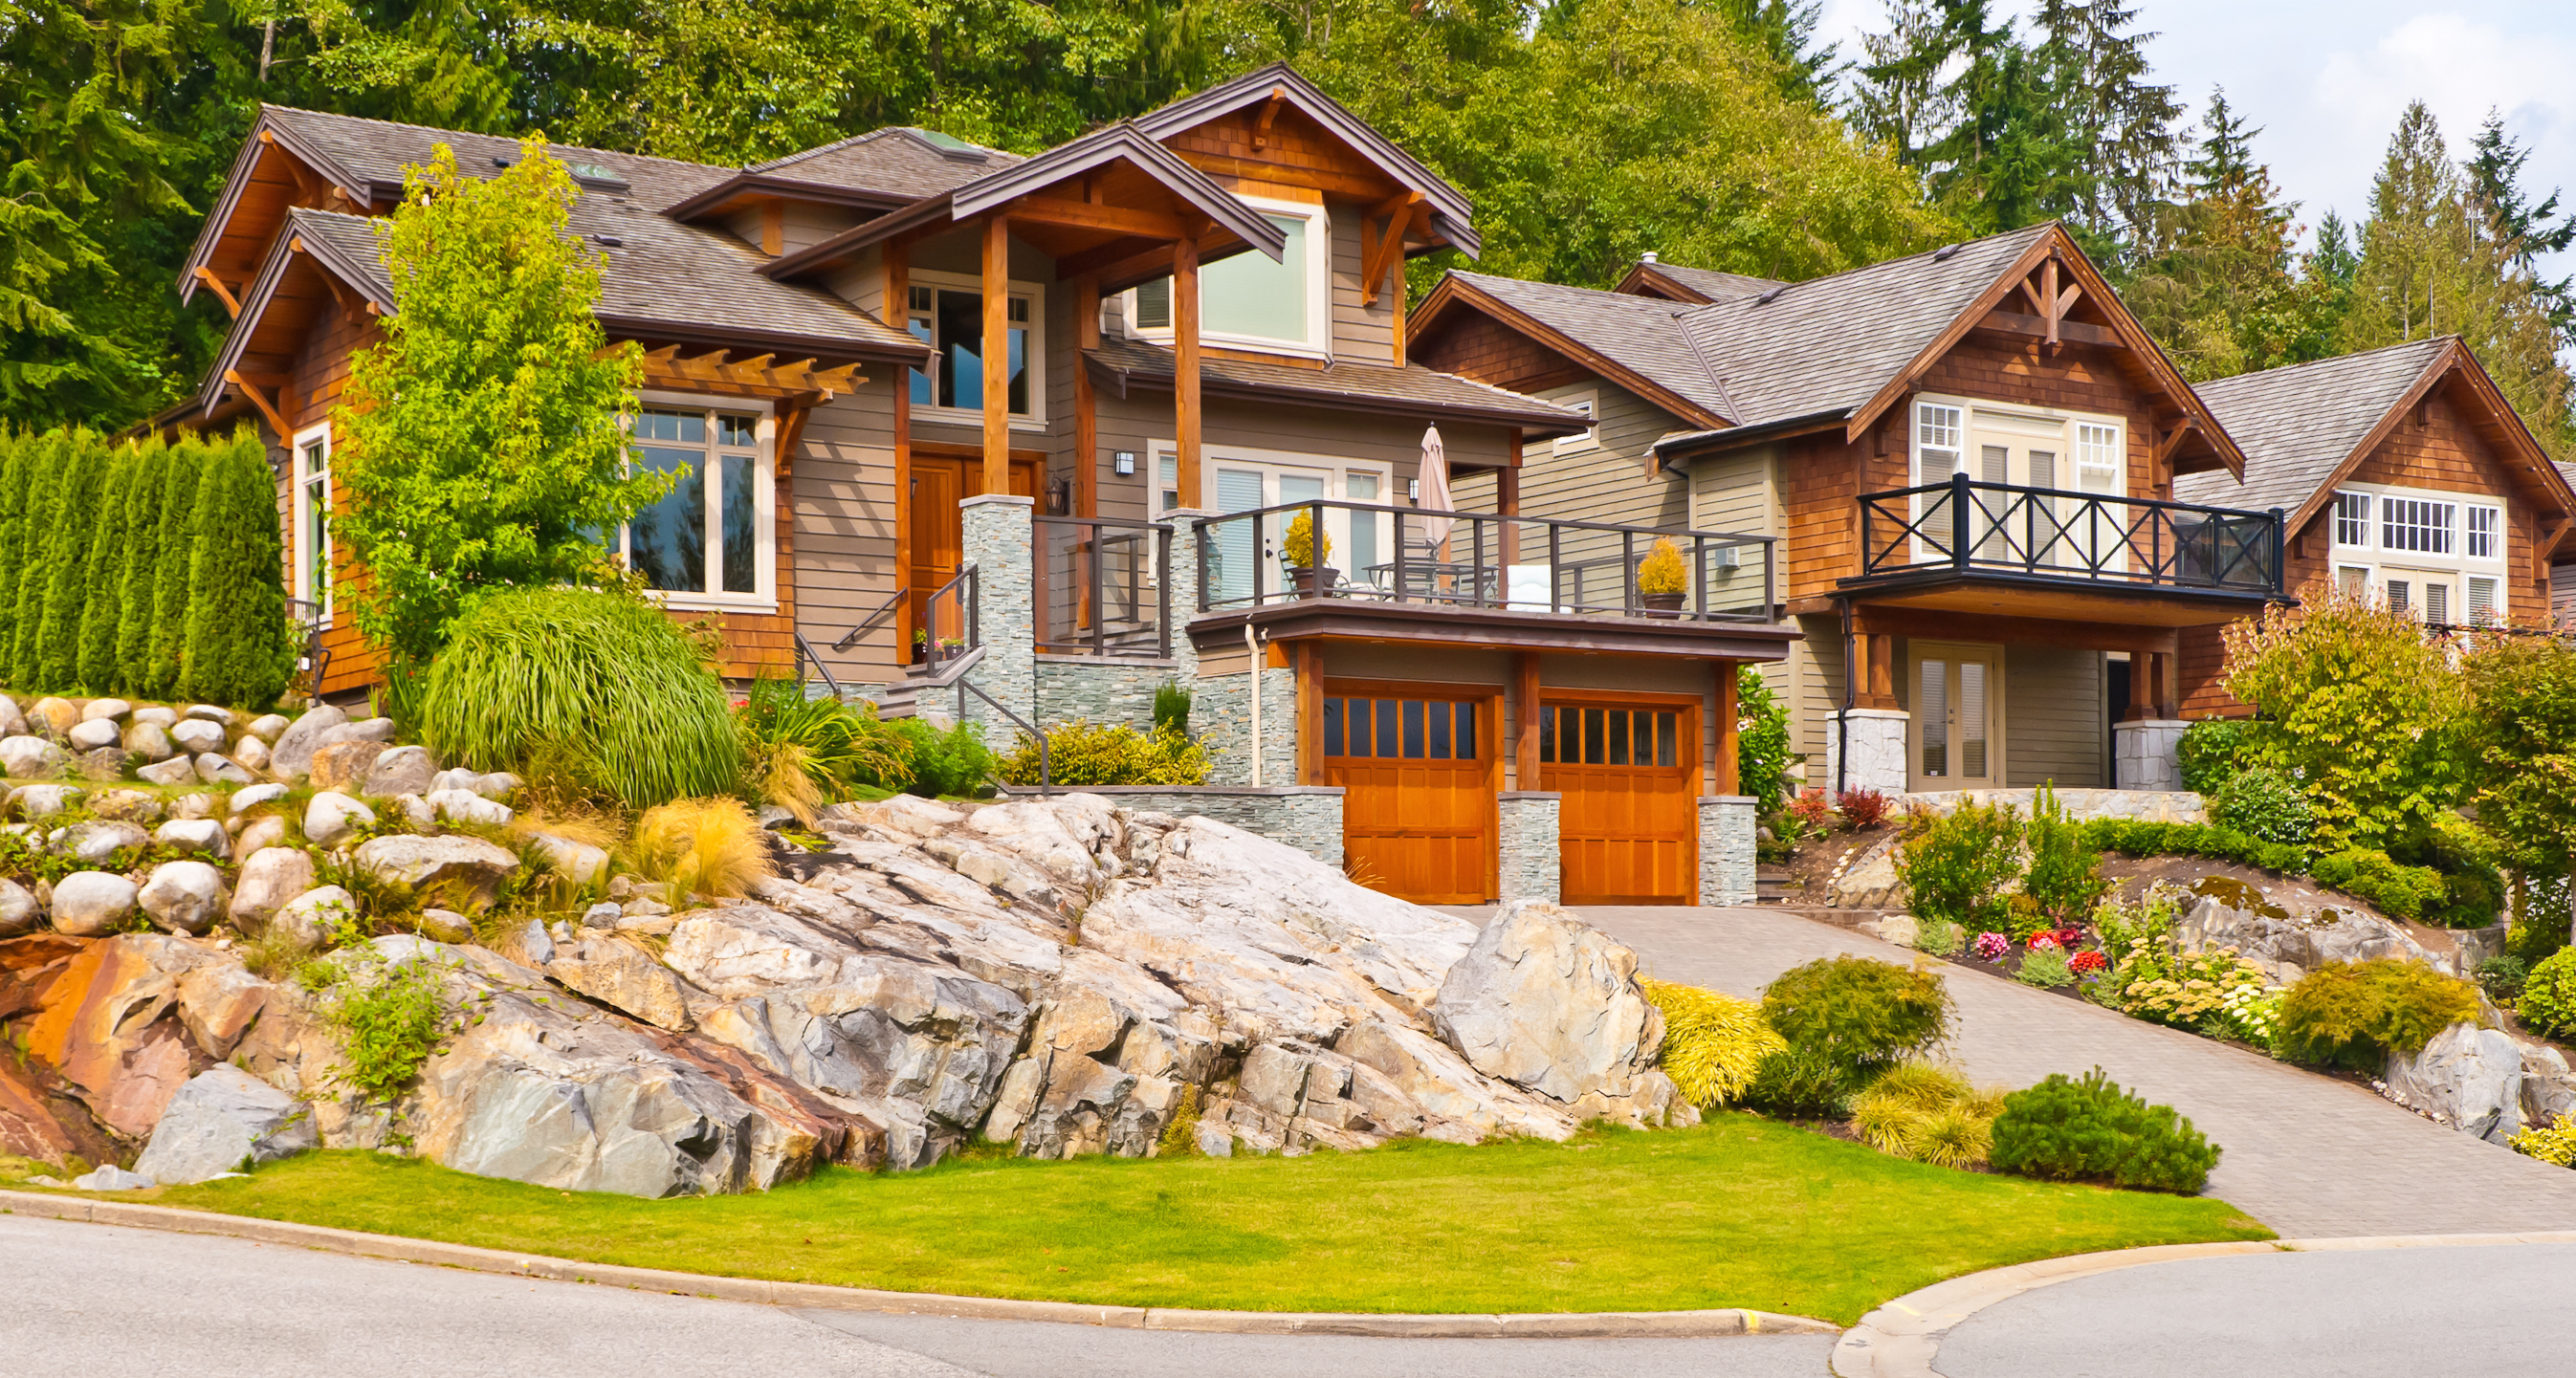 Asheville Homes Search All Area Homes for Sale Save Your Favorites